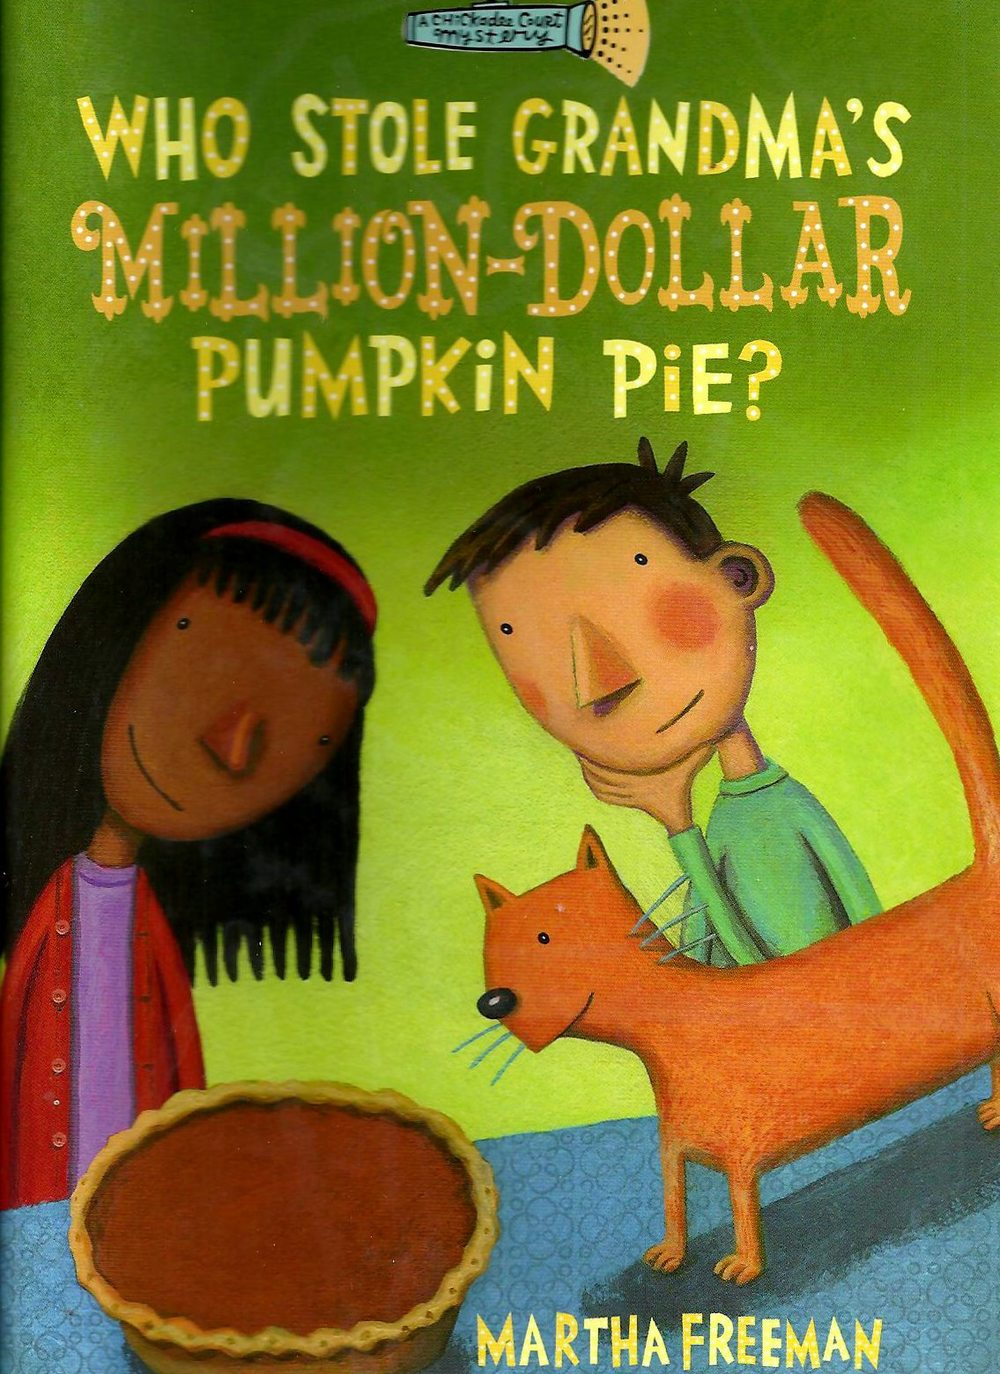 110927 pumpkin pie cover 001.jpg